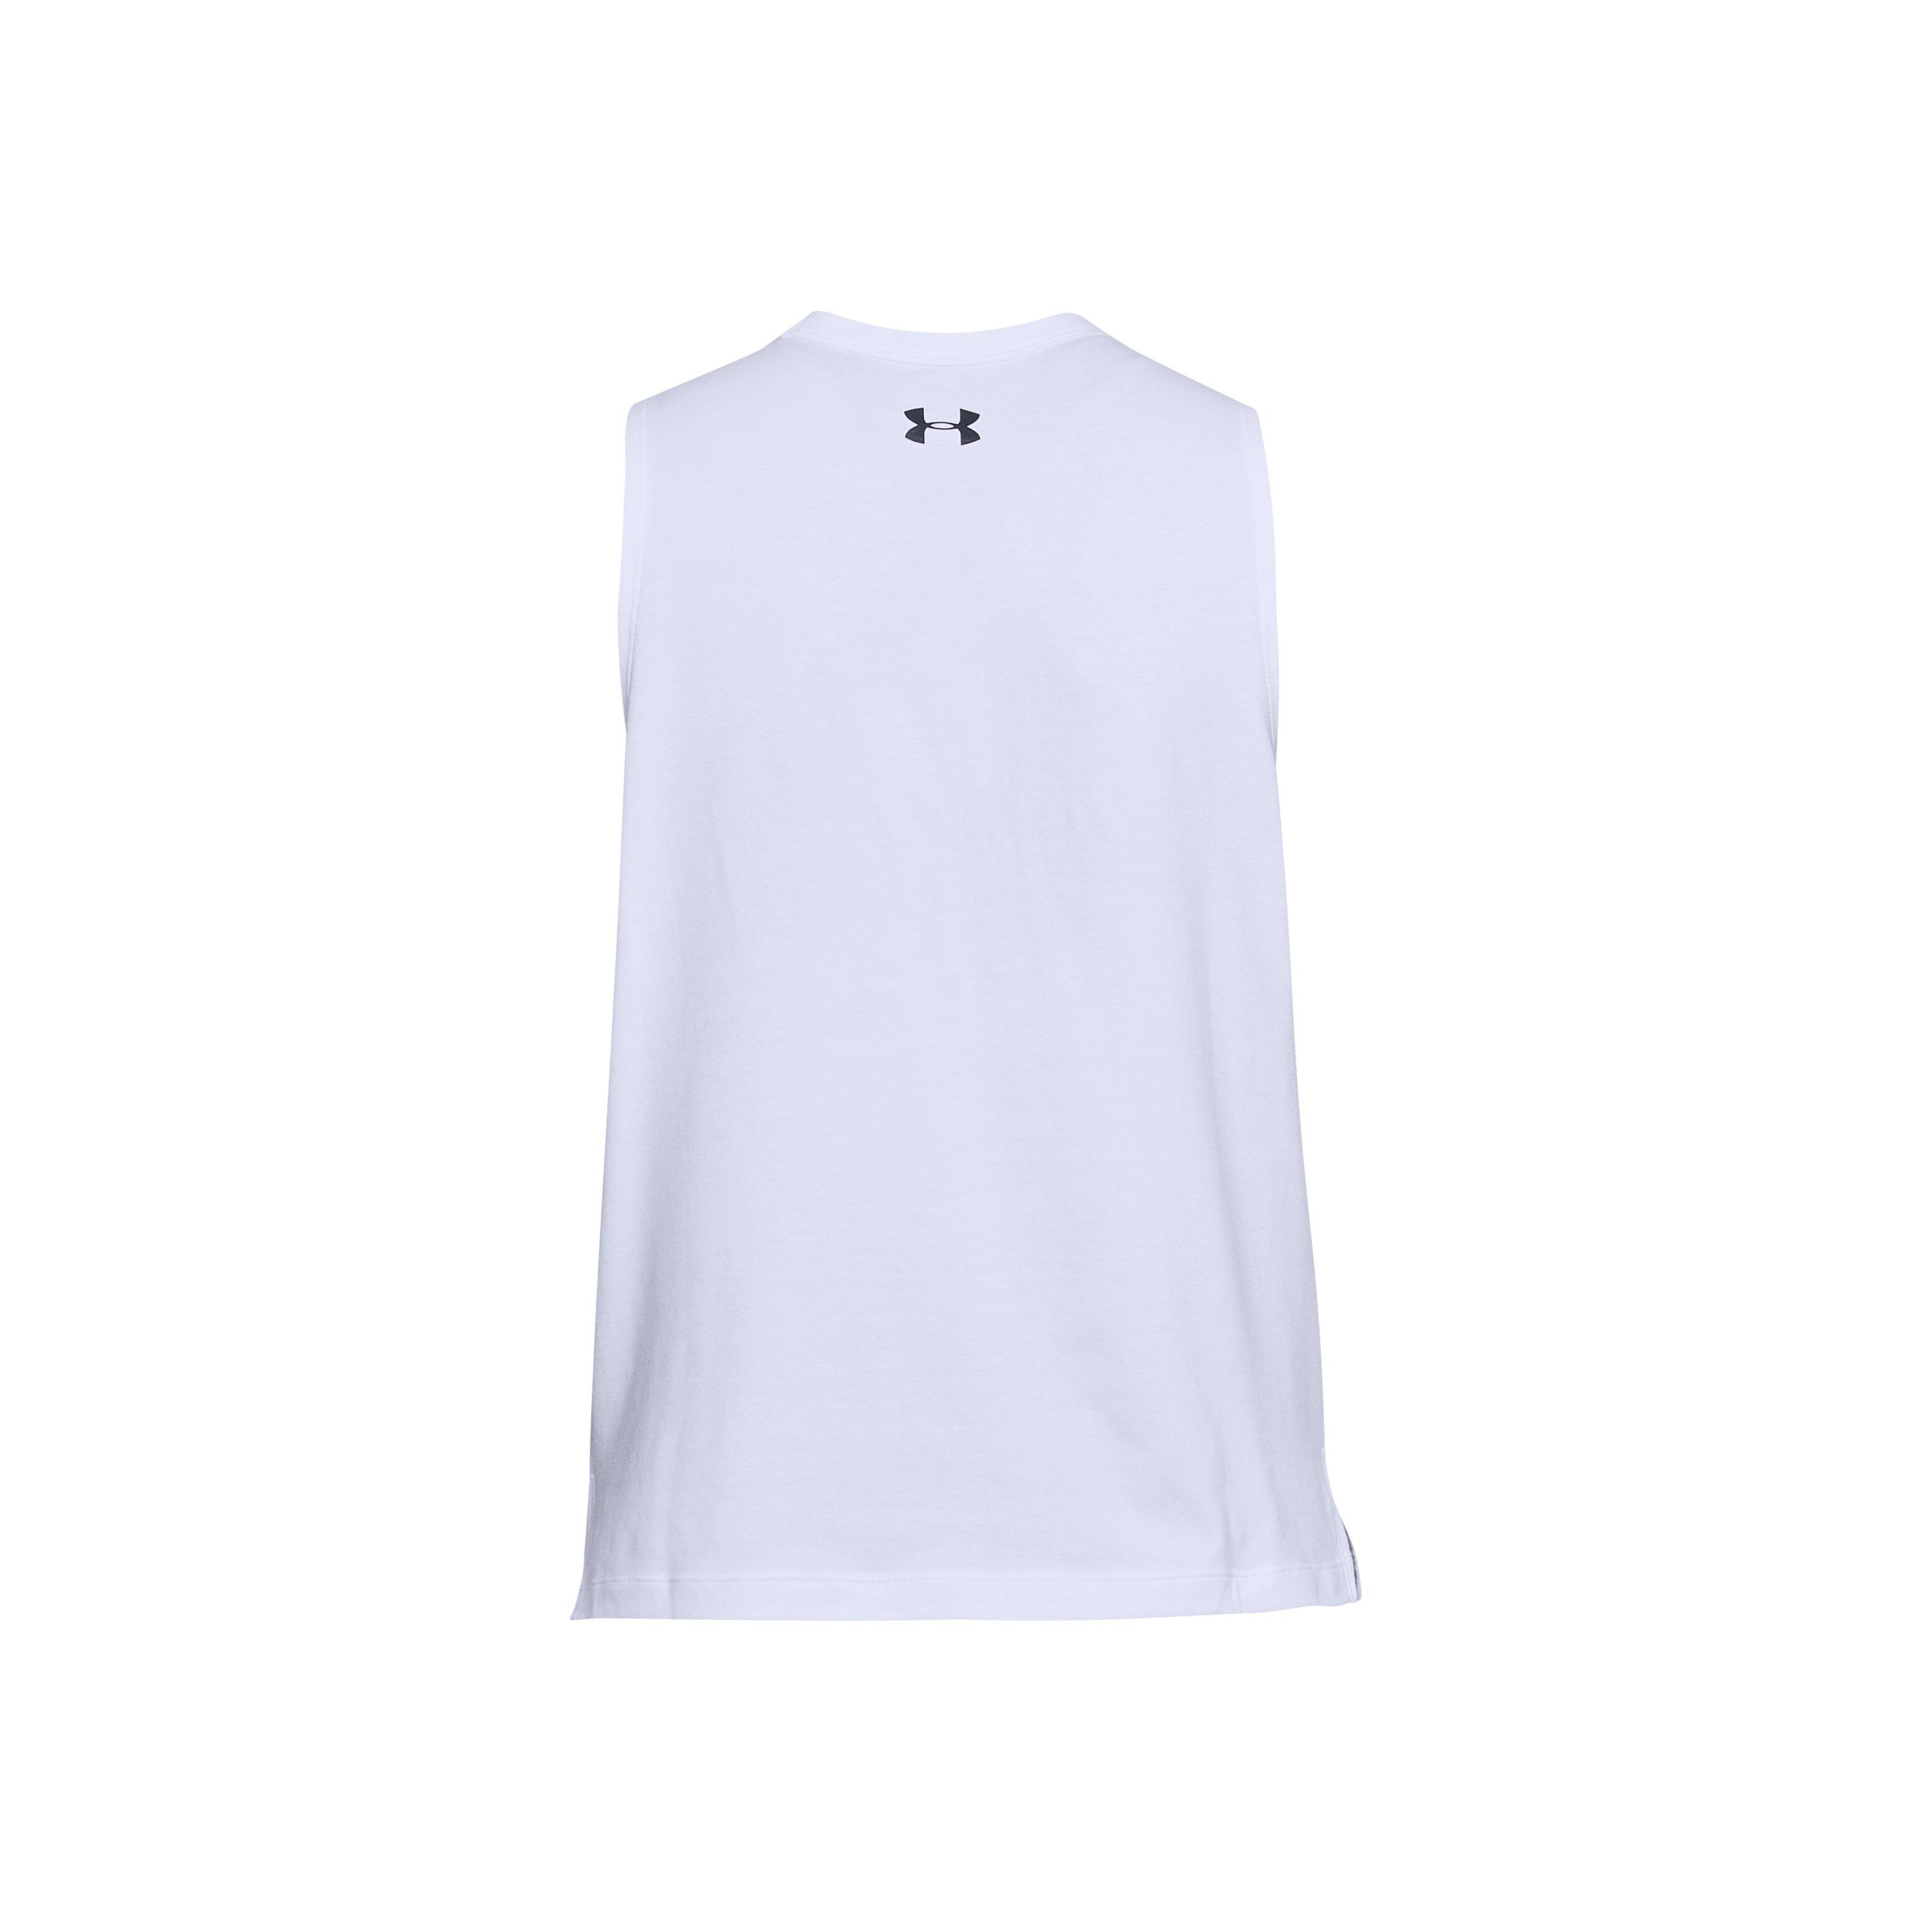 cf16cd64 Under Armour Women's Ua Overlay Logo Muscle Tank in White - Lyst